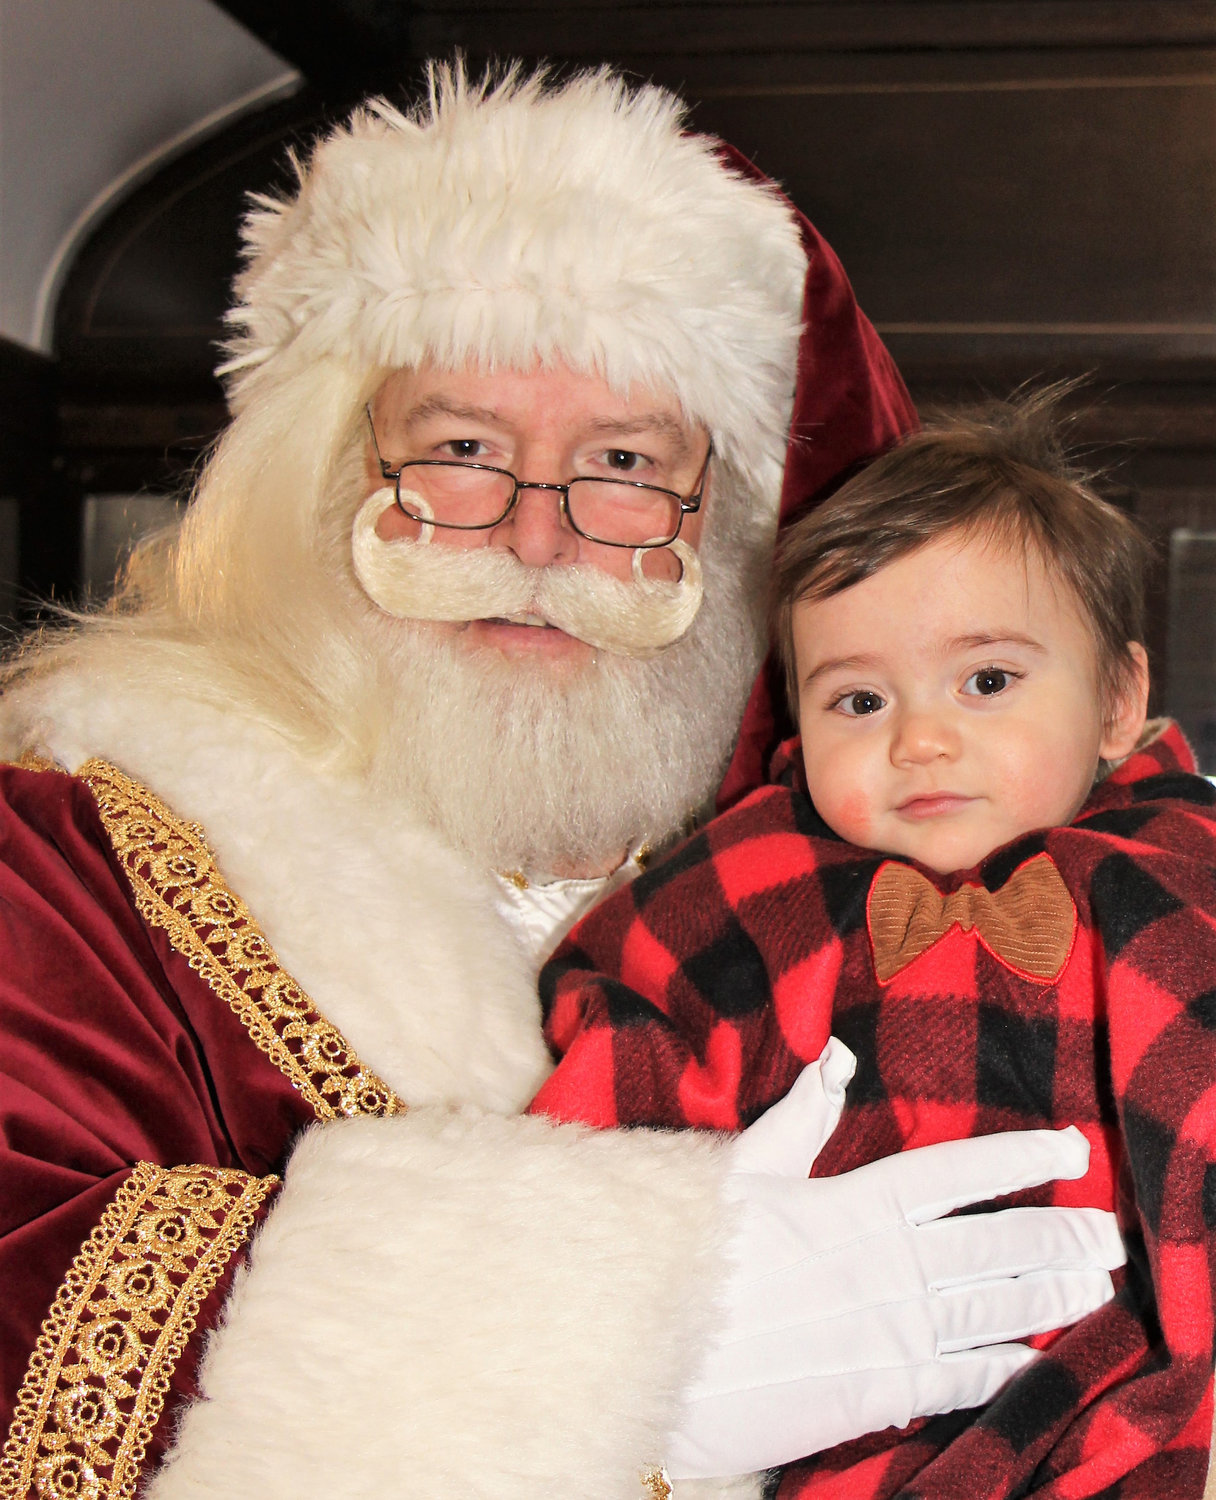 William Paulafox, 9 months old, was treated to a visit from Santa Claus, who posed for photos aboard the Polar Express with everybody who waited in line. Story, more photos, Page 3.